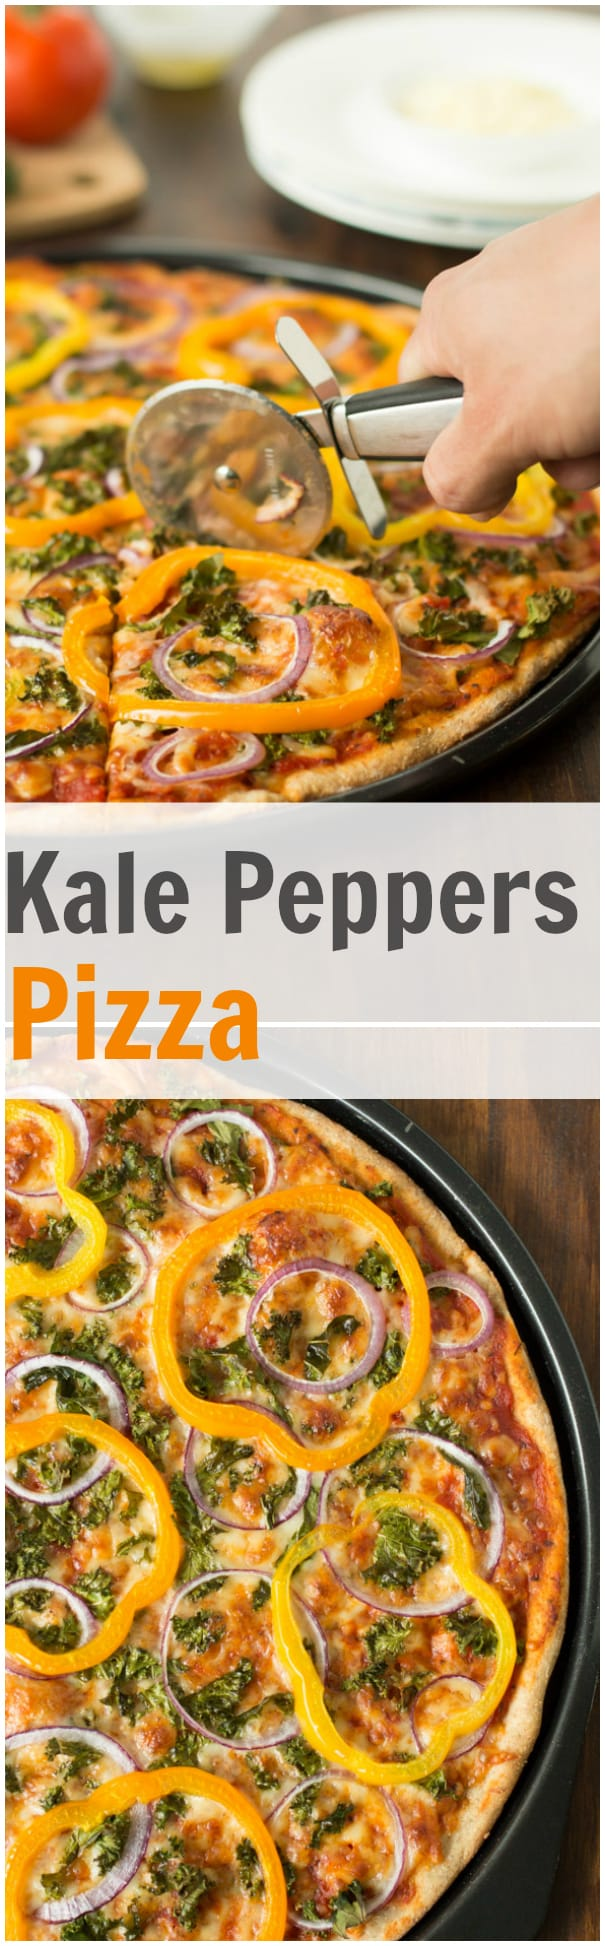 Kale Peppers Pizza